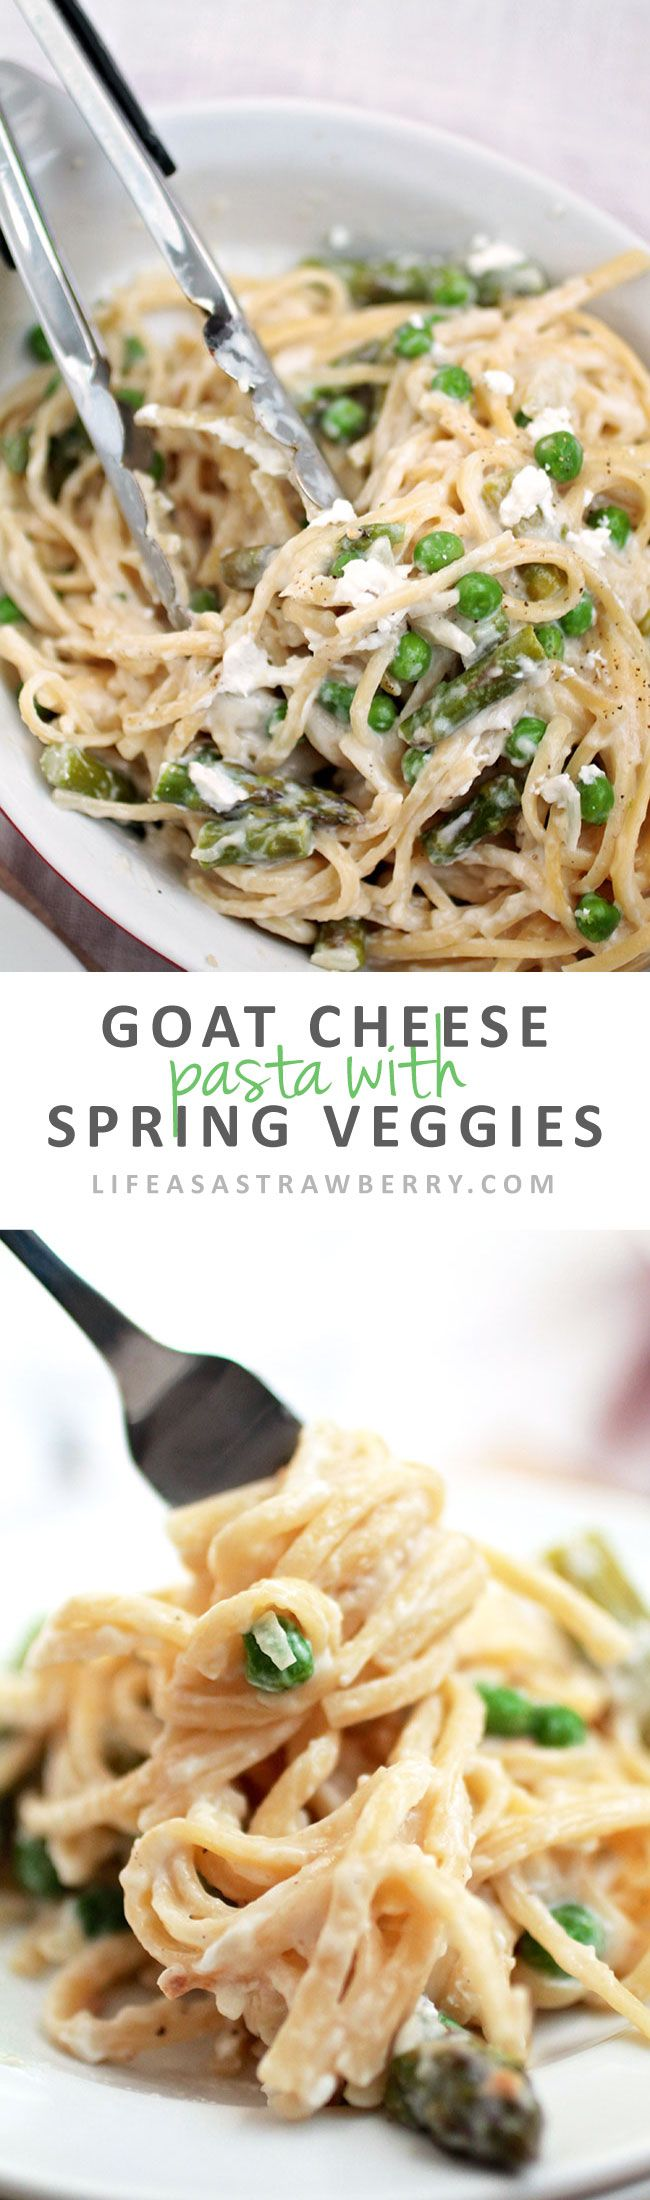 Goat Cheese Pasta with Spring Vegetables | This easy spaghetti recipe has a simple goat cheese sauce and plenty of healthy spring vegetables - the perfect pasta recipe for busy weeknights. Vegetarian.